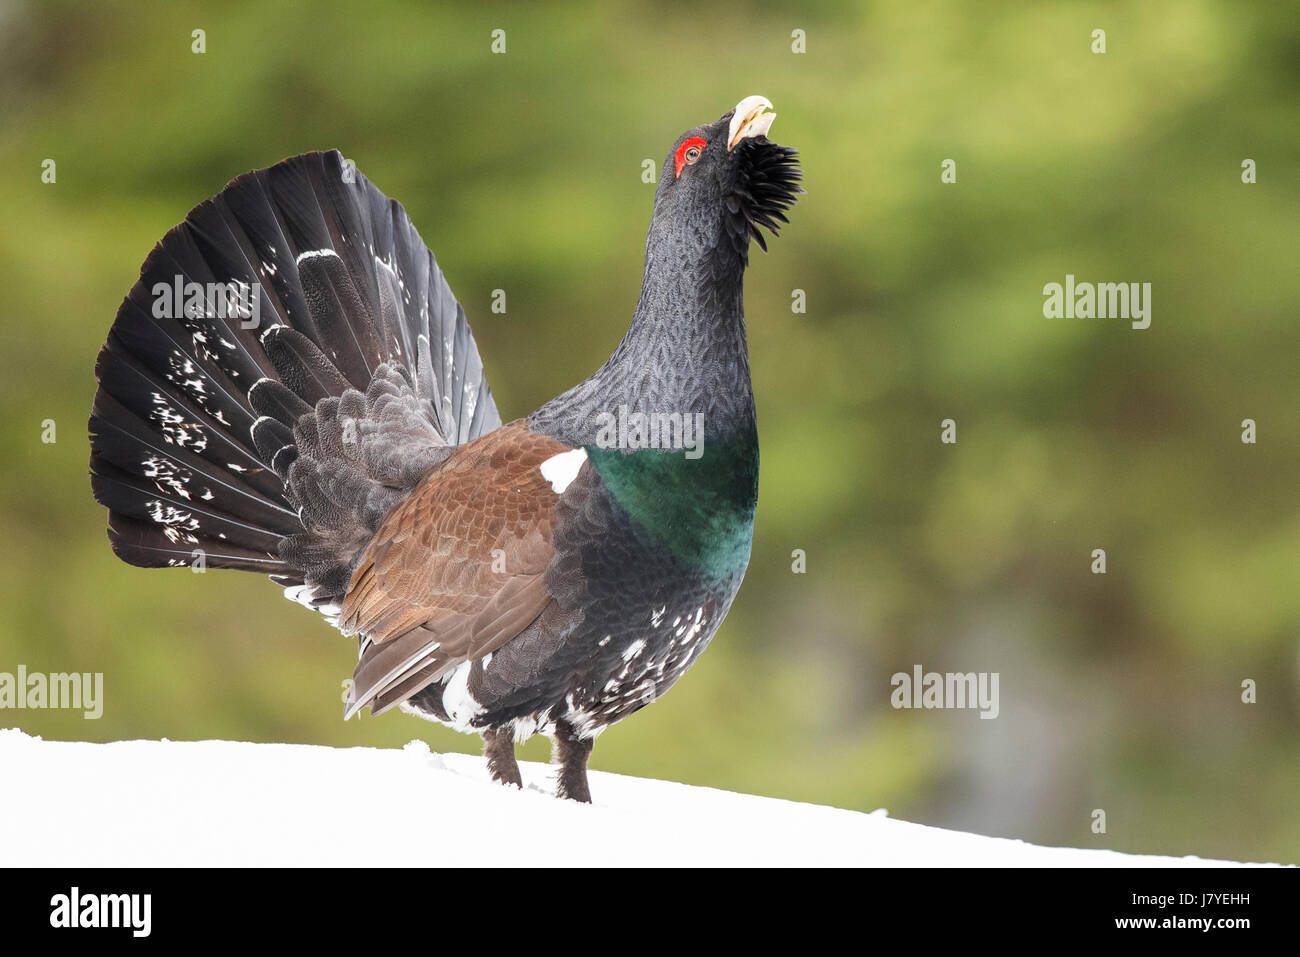 Capercaillie (Tetrao urogallus) during courtship in forest, Winter, Berchtesgadener Land, Bavaria, Germany Stock Photo